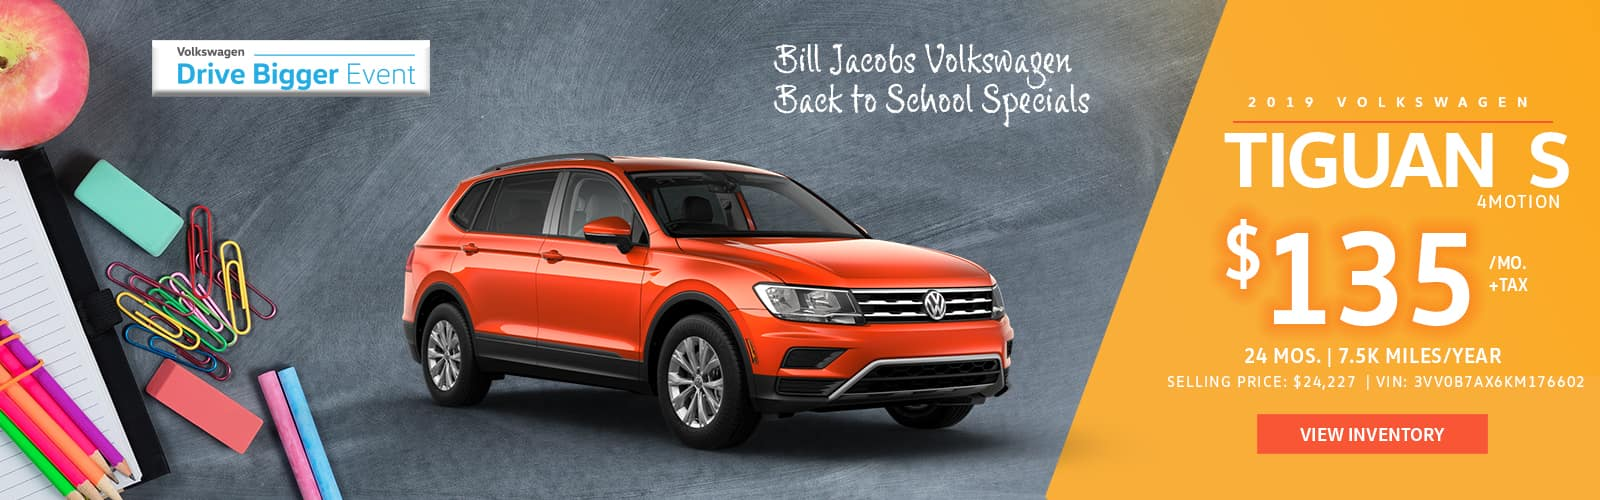 Bill Jacobs Volkswagen | Auto Dealership & Service Center in